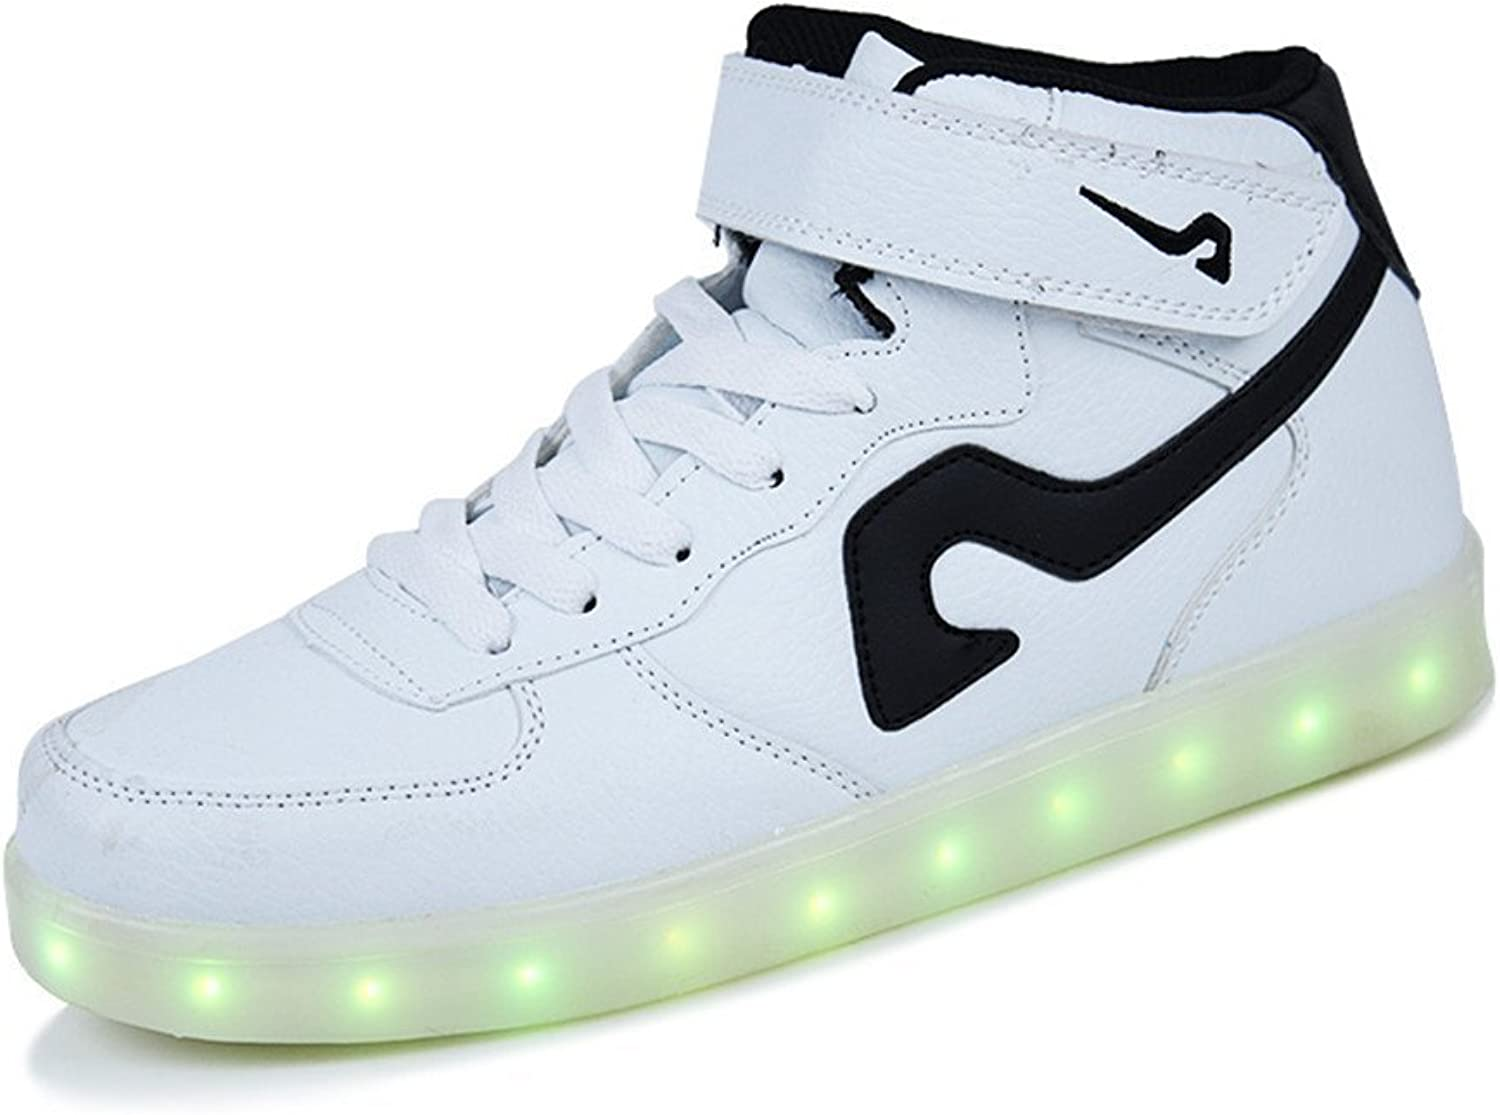 A2kmsmss5a New Men Women High Top USB Charging LED Light Up shoes Flashing Sneakers